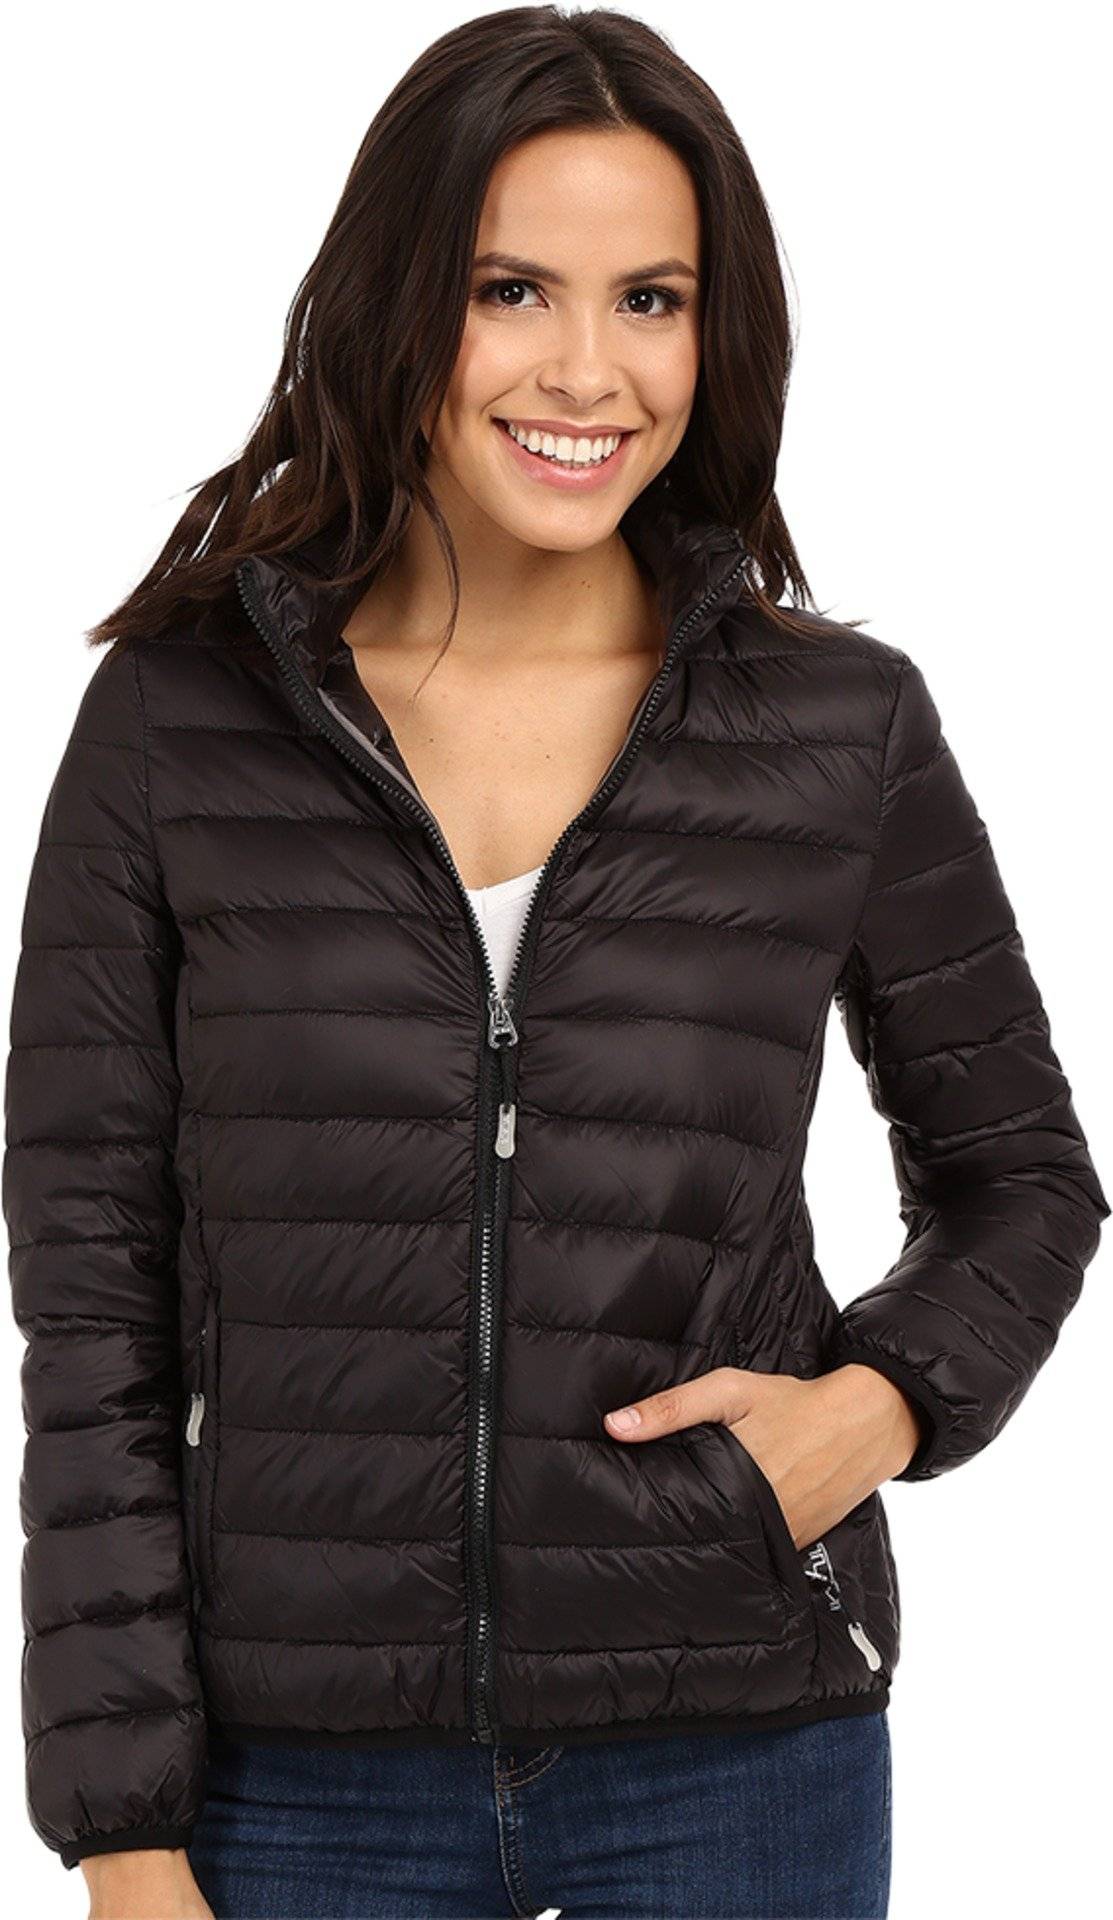 Tumi Women's Clairmont Packable Travel Puffer Jacket Black Small